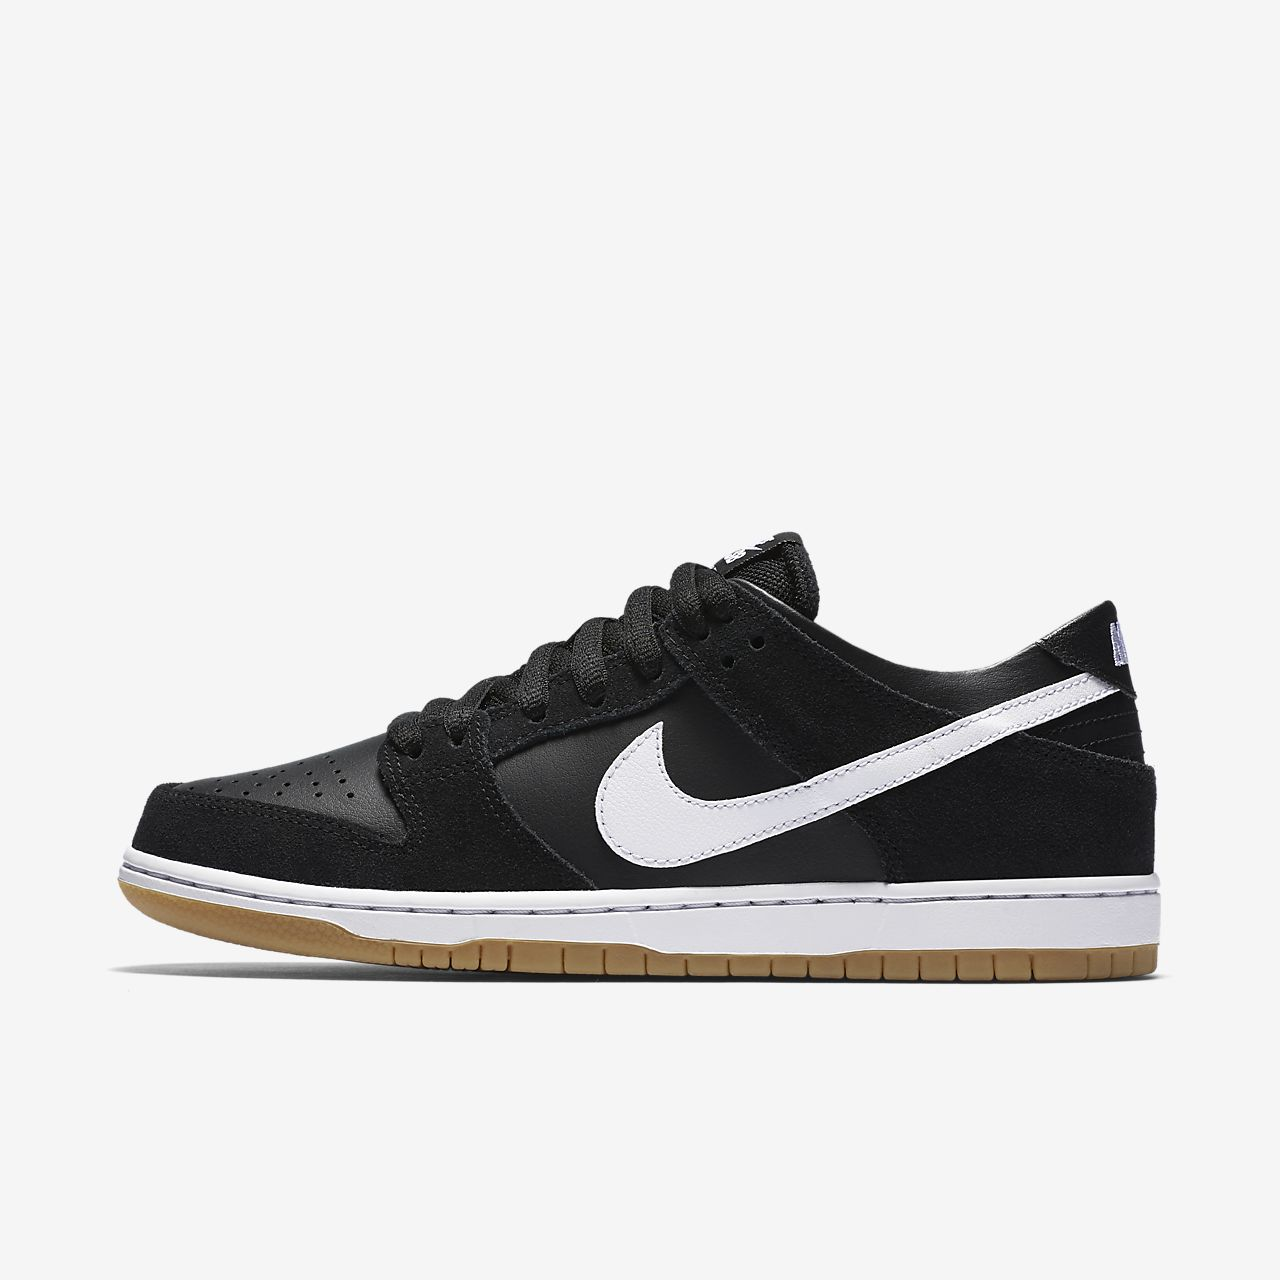 nike dunk sb low for sale